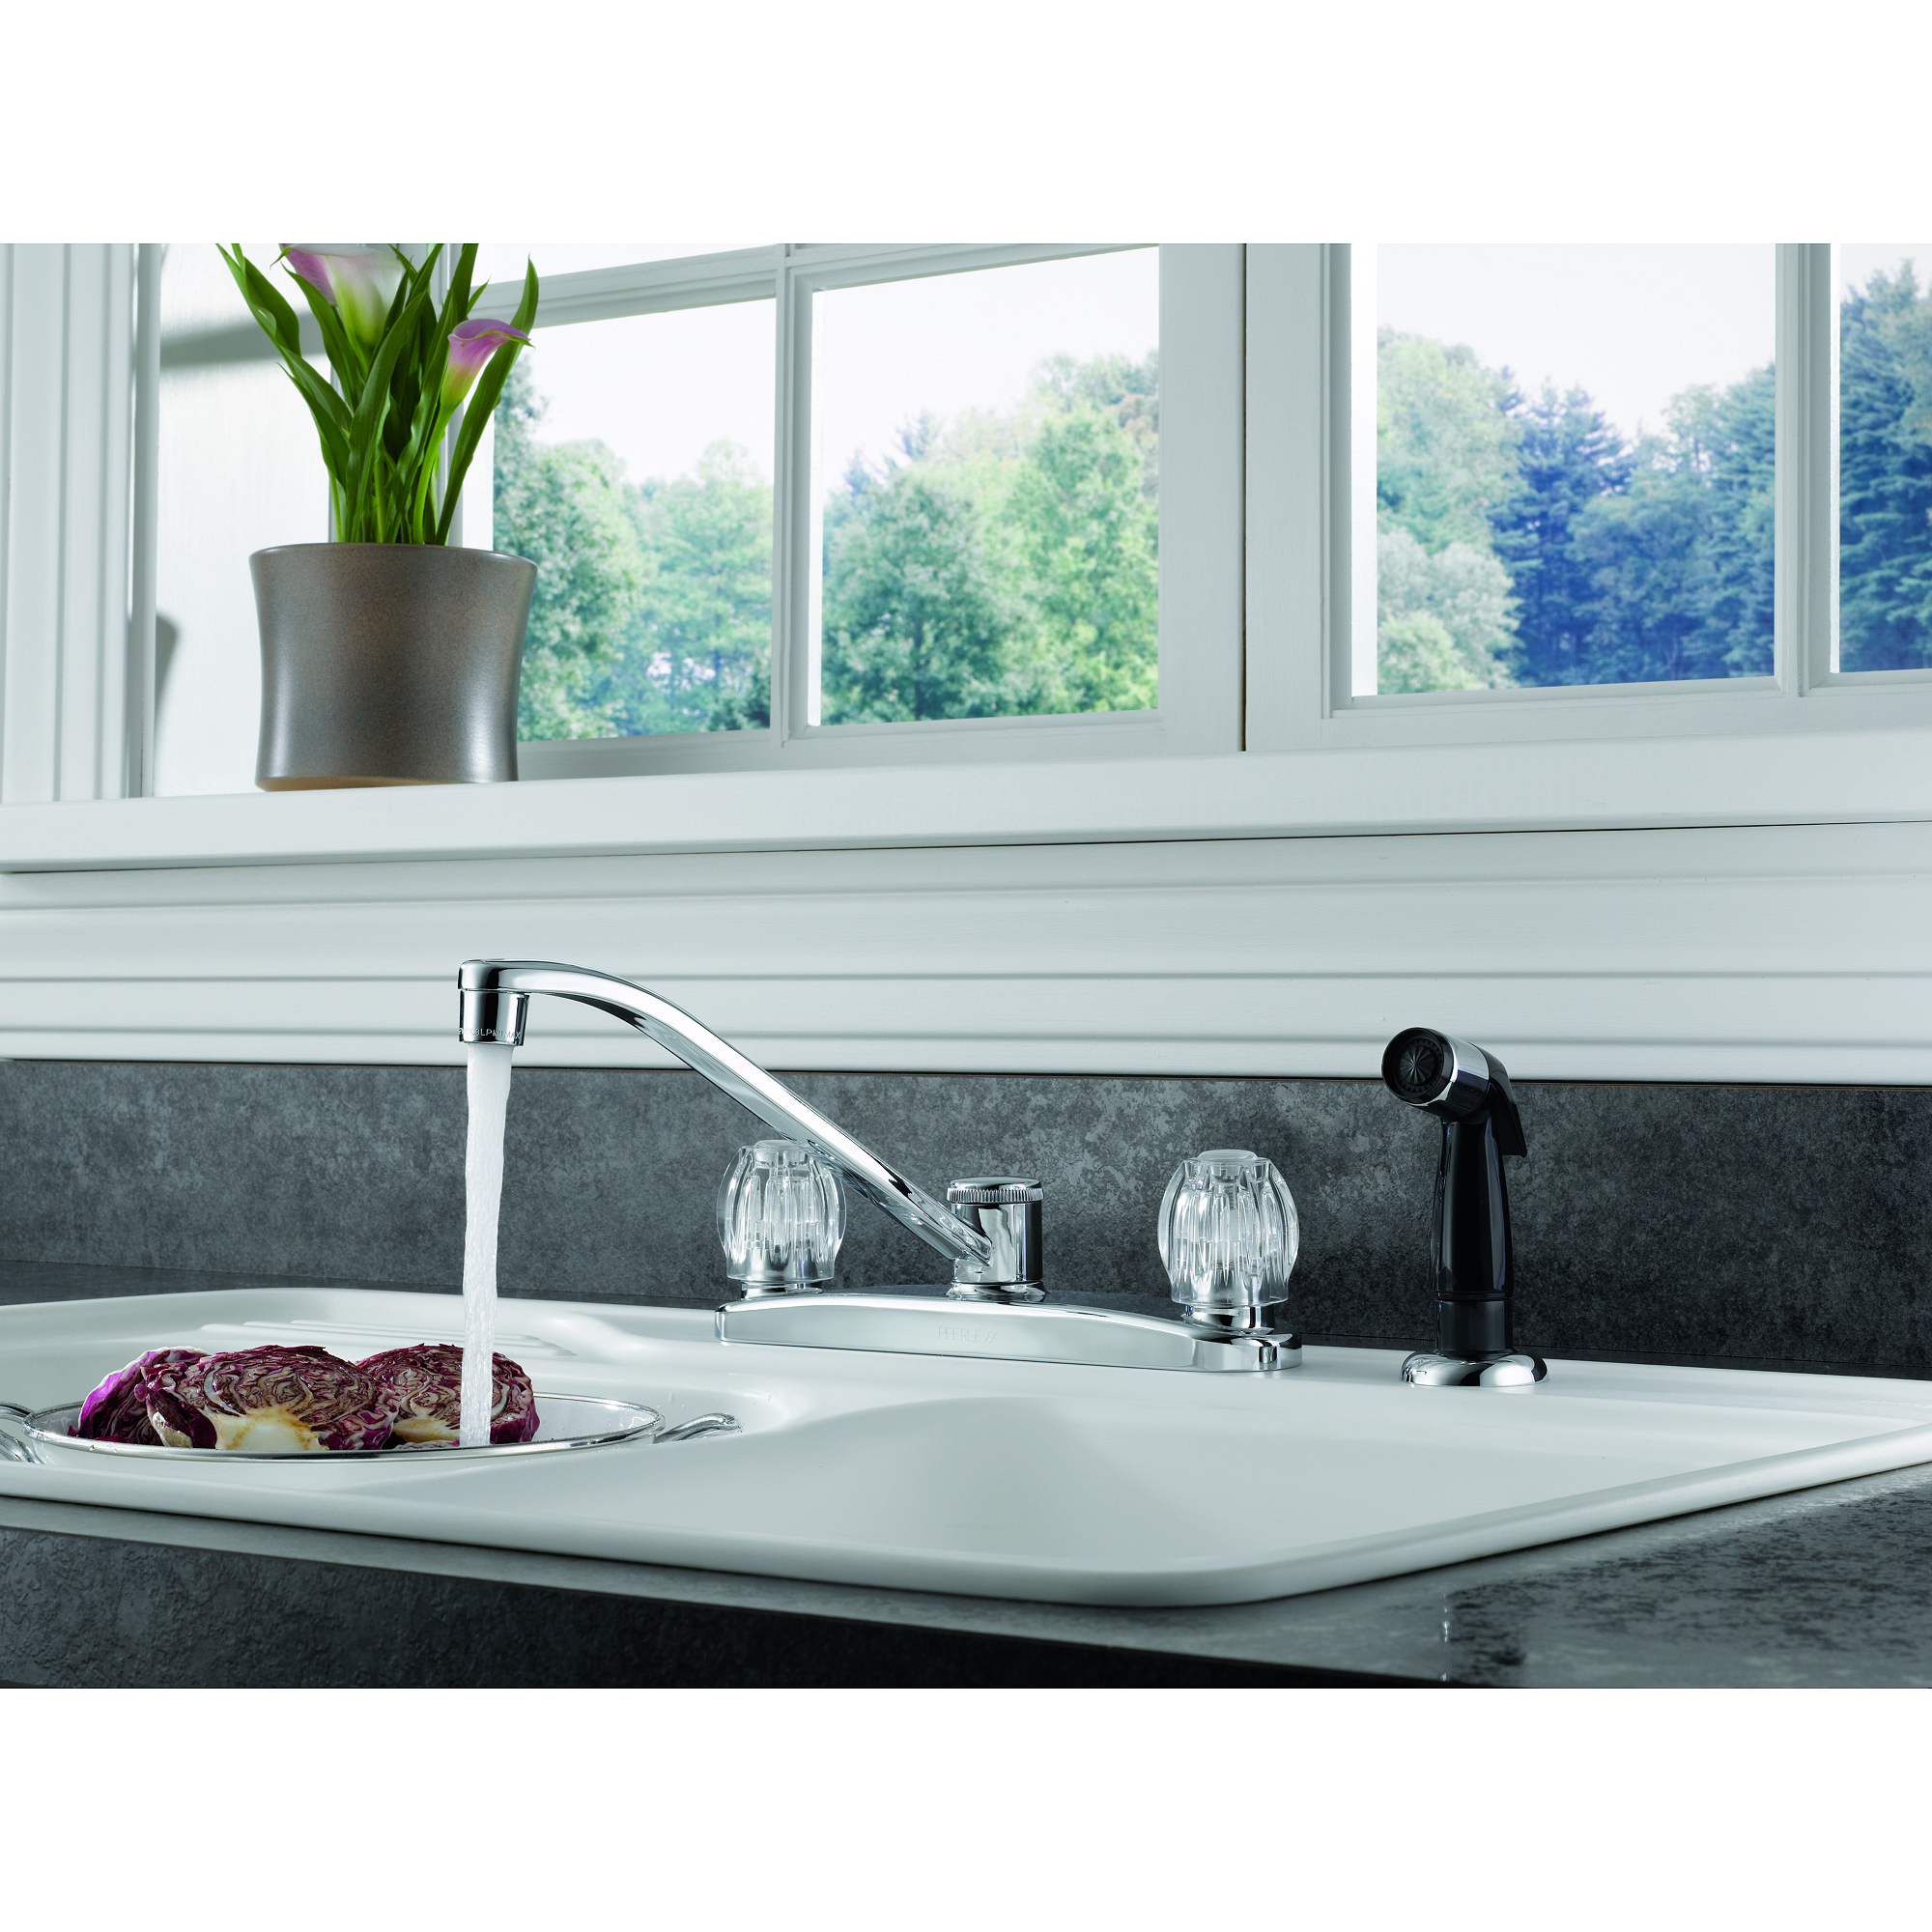 brushed faucets home bridge depot moen fresh renzo info bathroom www design faucet nickel sink and kitchen awesome beautiful aggressivemarketing